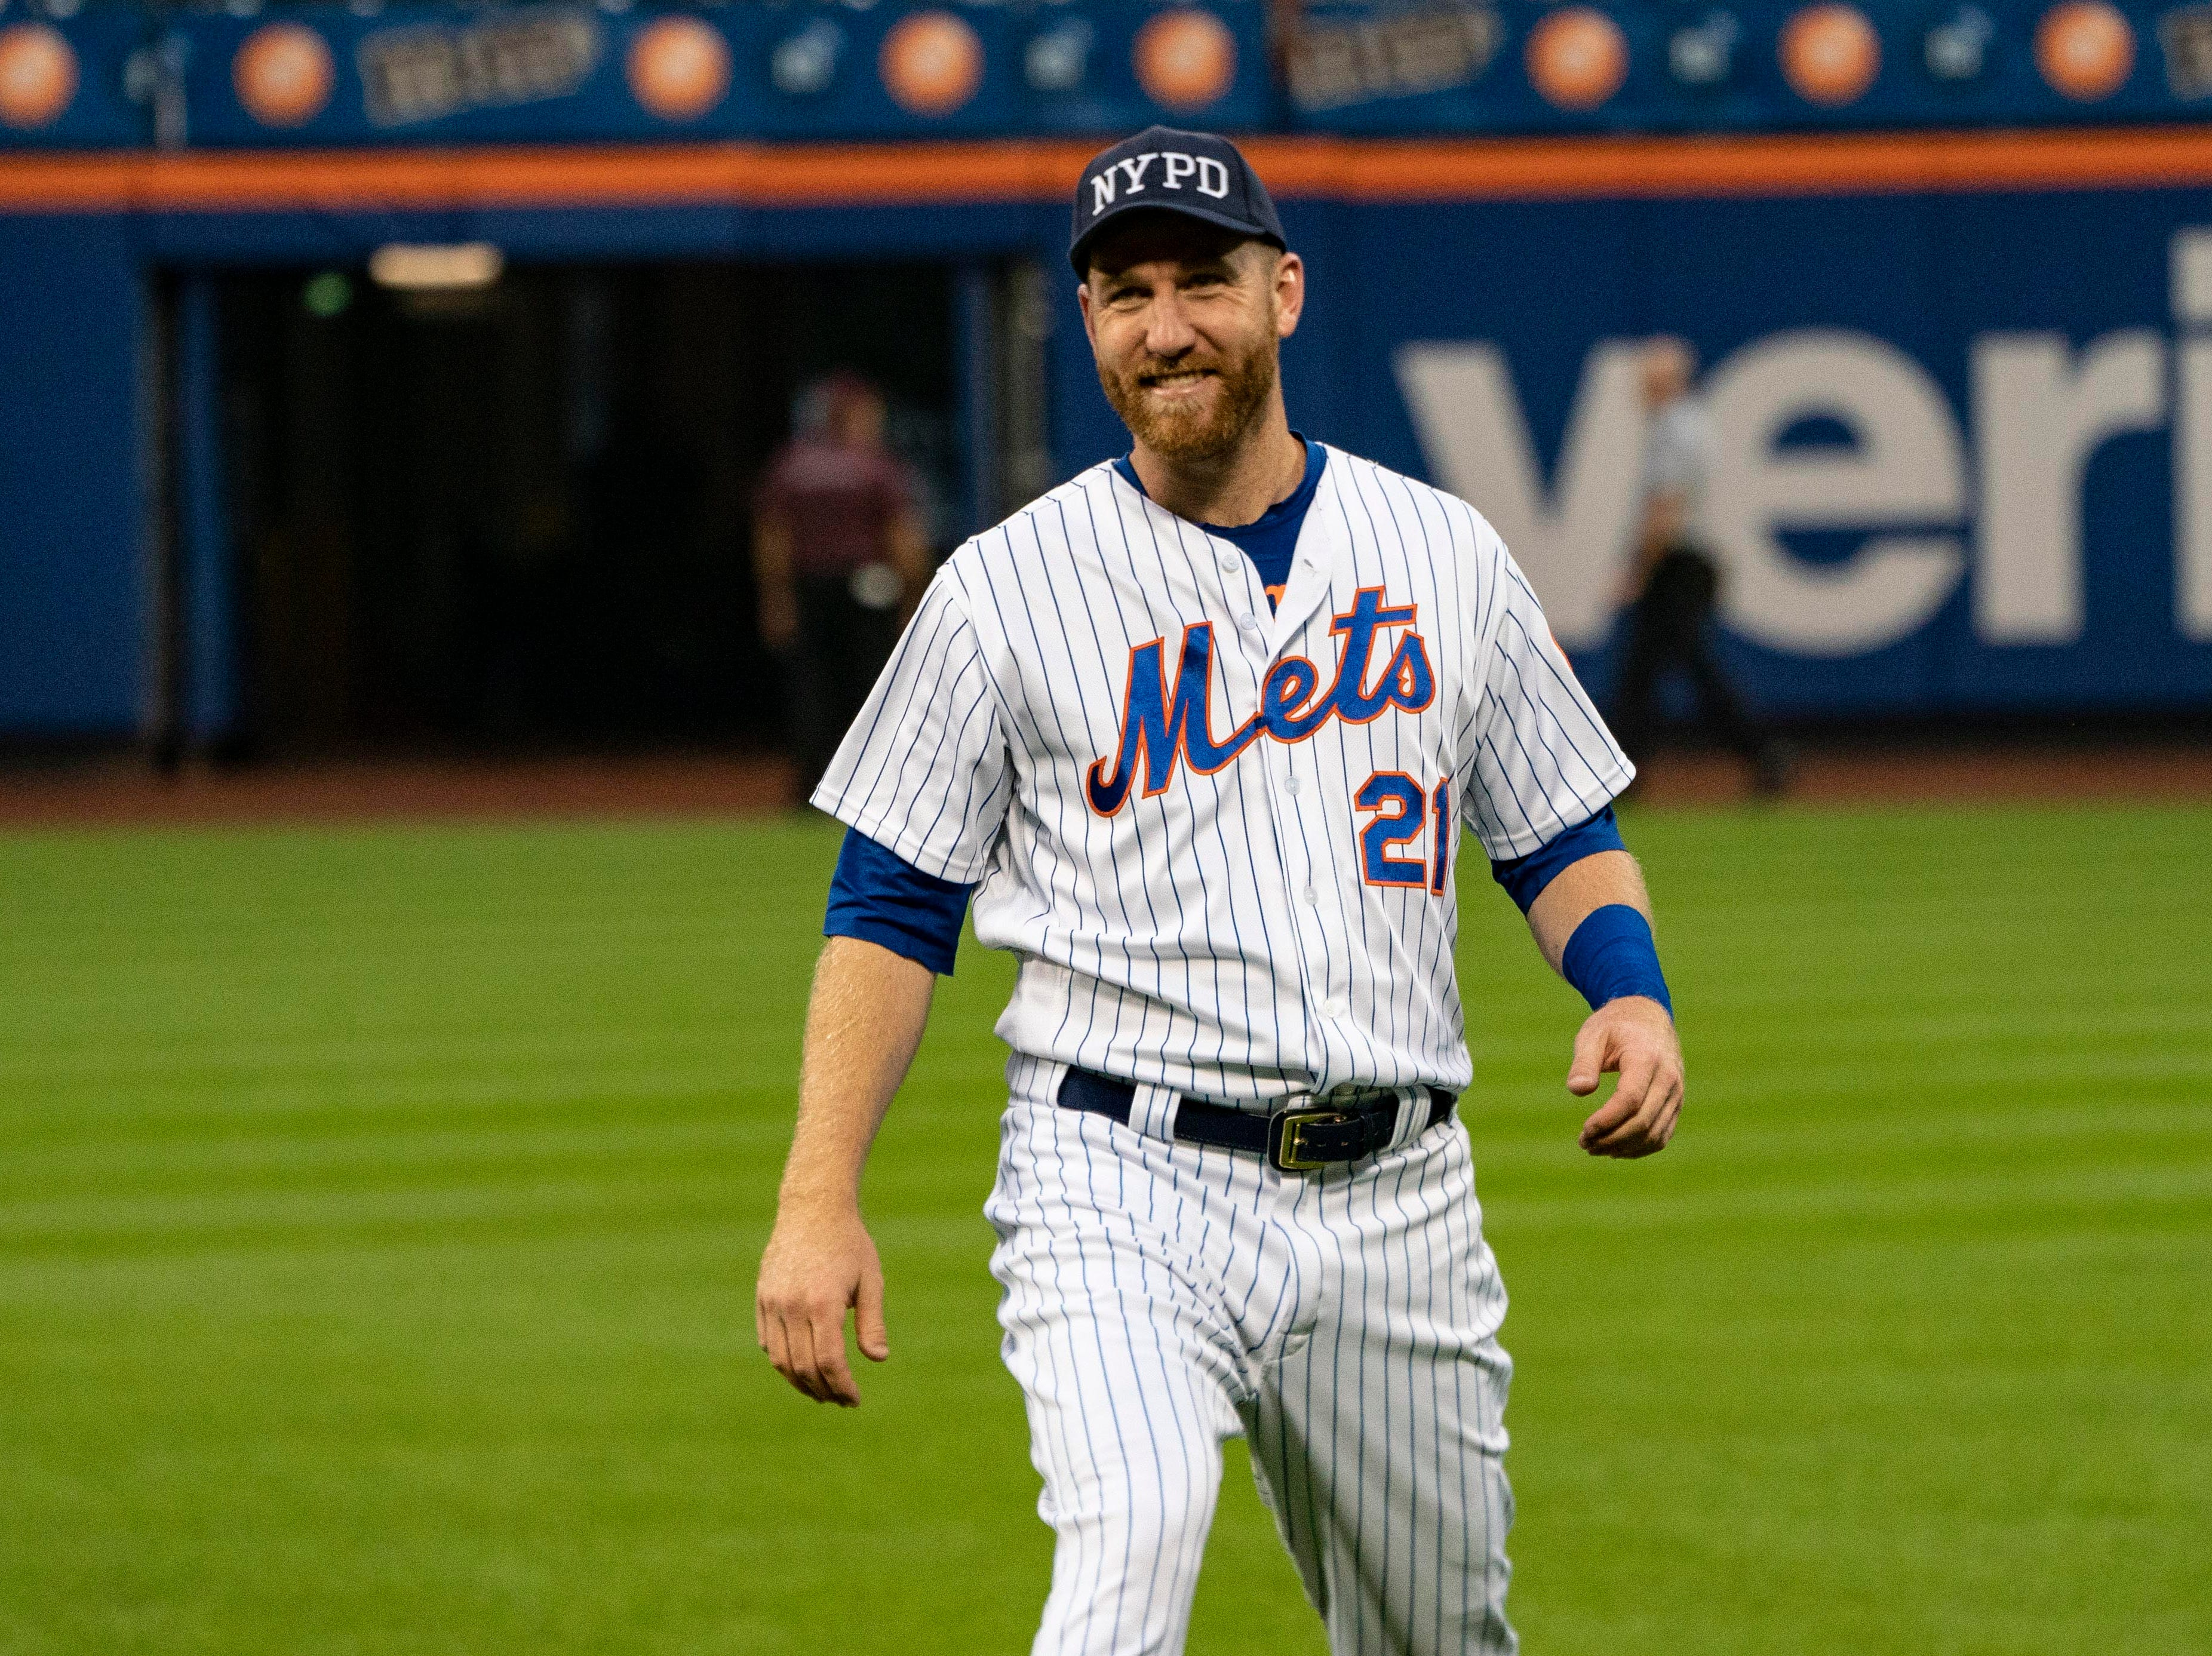 Sep 11, 2018; New York City, NY, USA; New York Mets third baseman Todd Frazier (21) wears a NYPD cap to show respect for first responders on September 11 before the game against the Miami Marlins at Citi Field. Mandatory Credit: Gregory J. Fisher-USA TODAY Sports